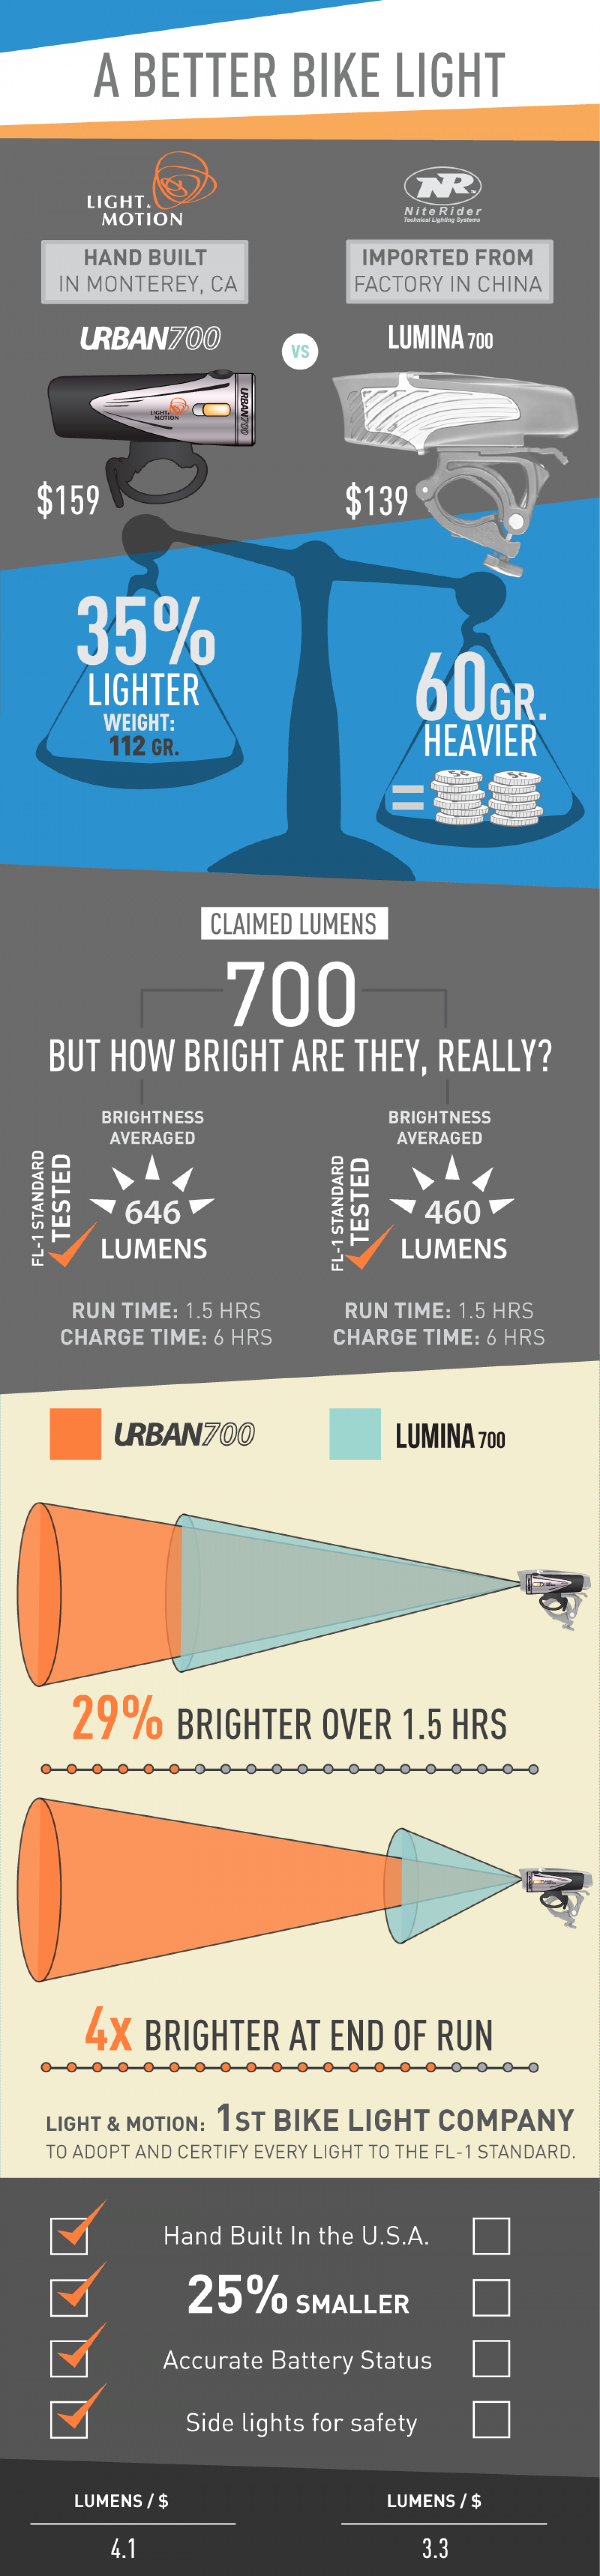 A Better Bike Light - Urban 700 Infographic